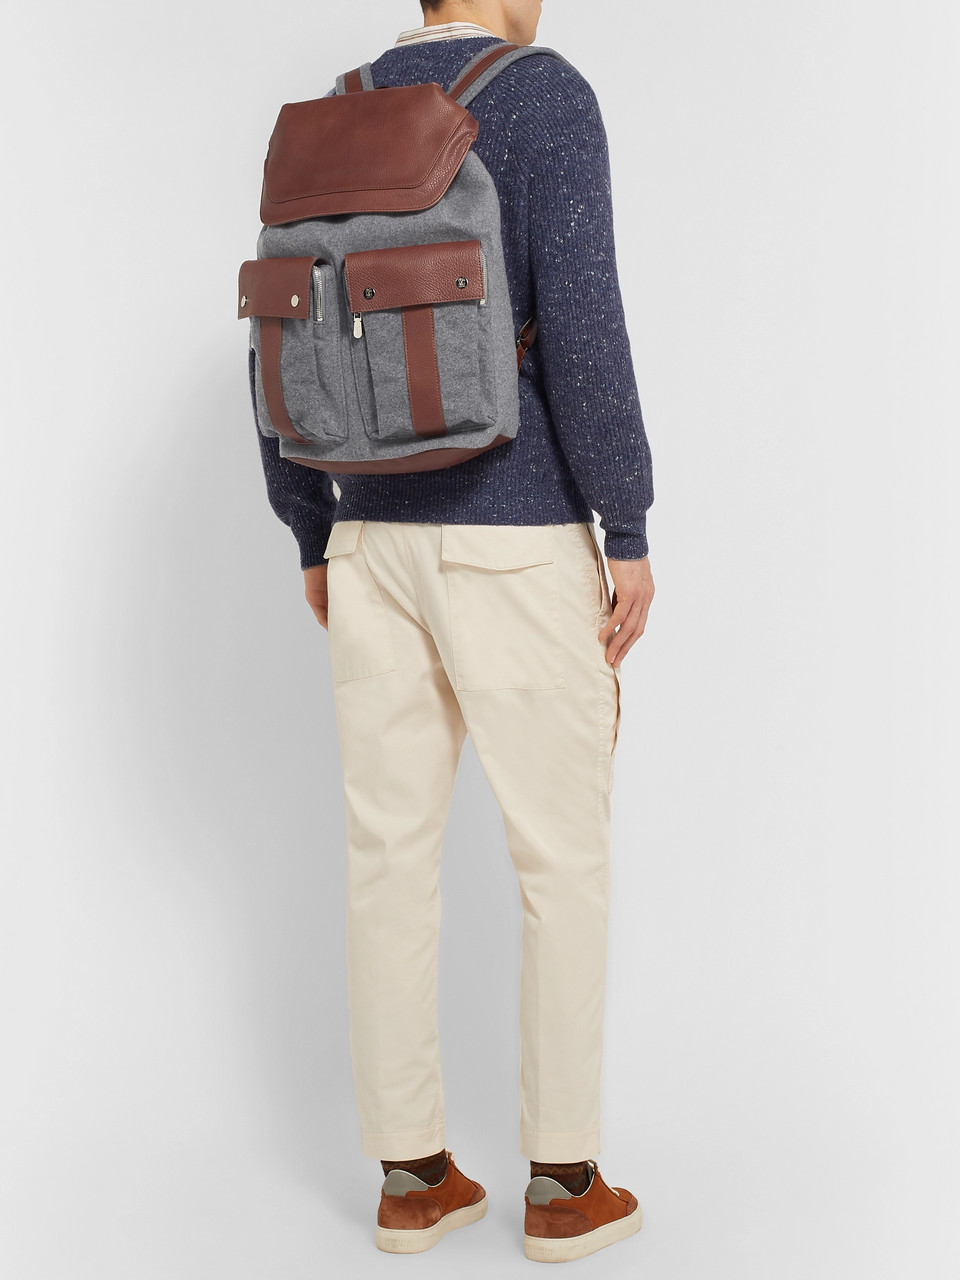 Brunello Cucinelli Full-Grain Leather and Mélange Wool Backpack